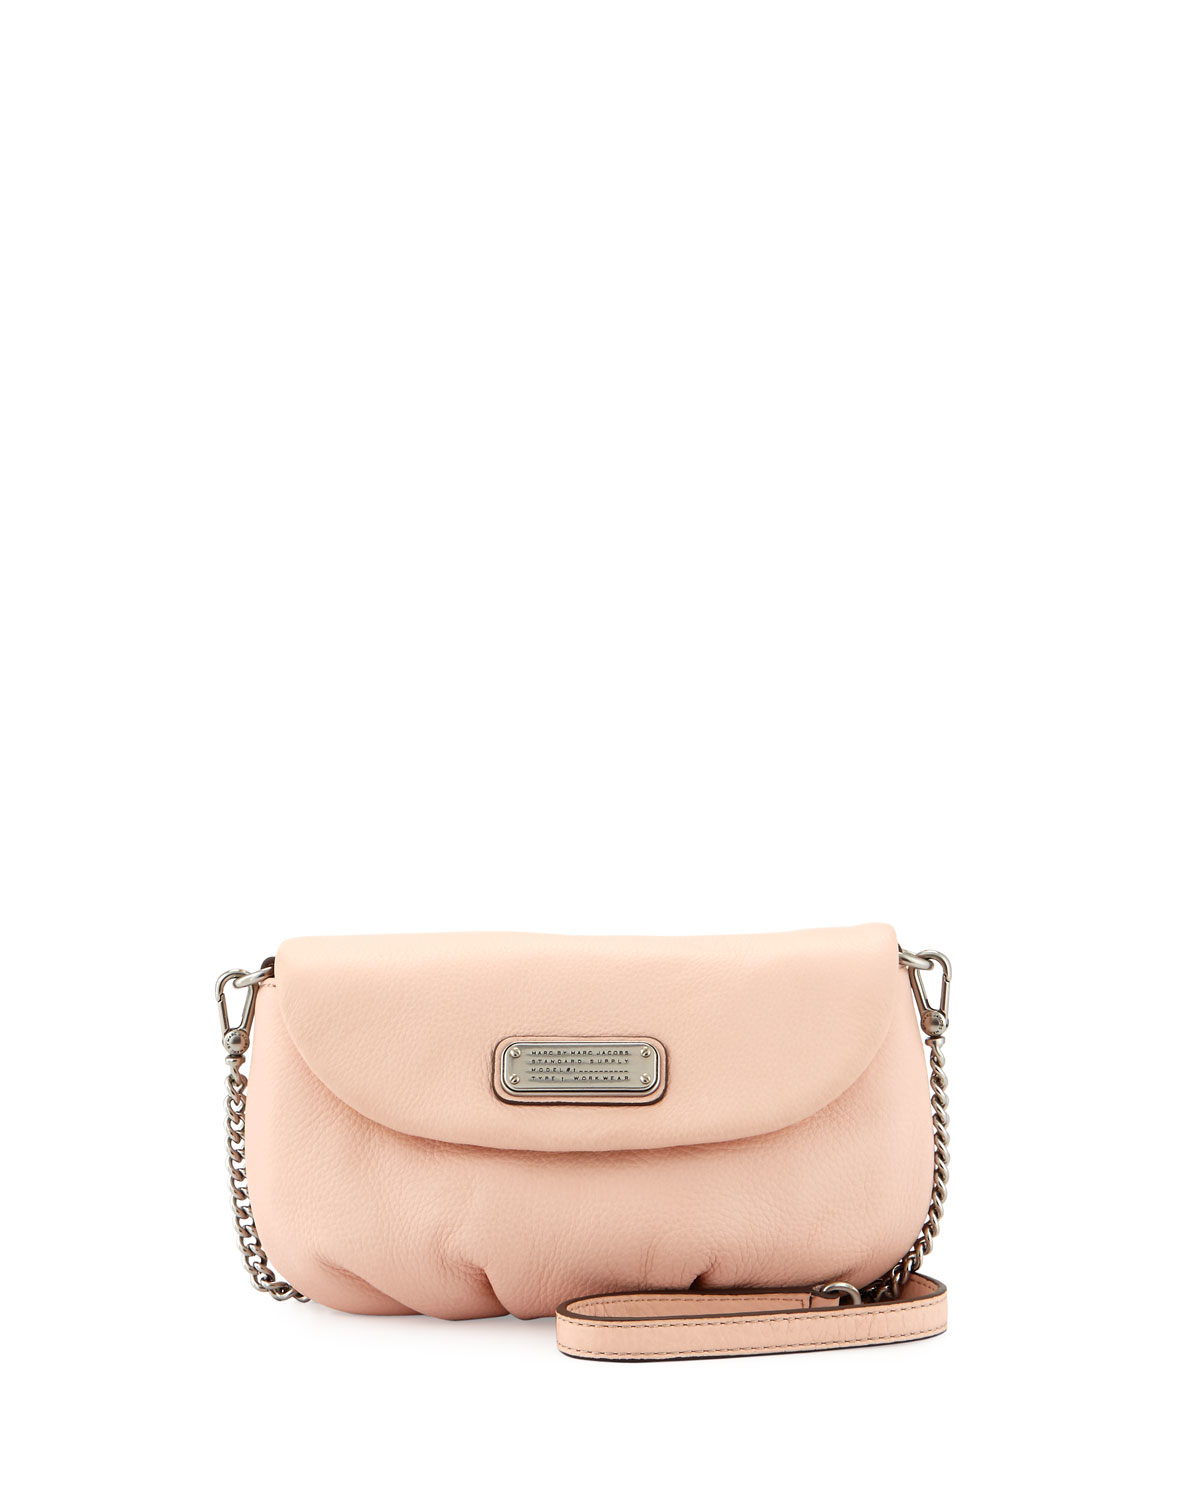 1a85c382fbfe Gallery. Previously sold at  Neiman Marcus · Women s Marc By Marc Jacobs  Karlie ...